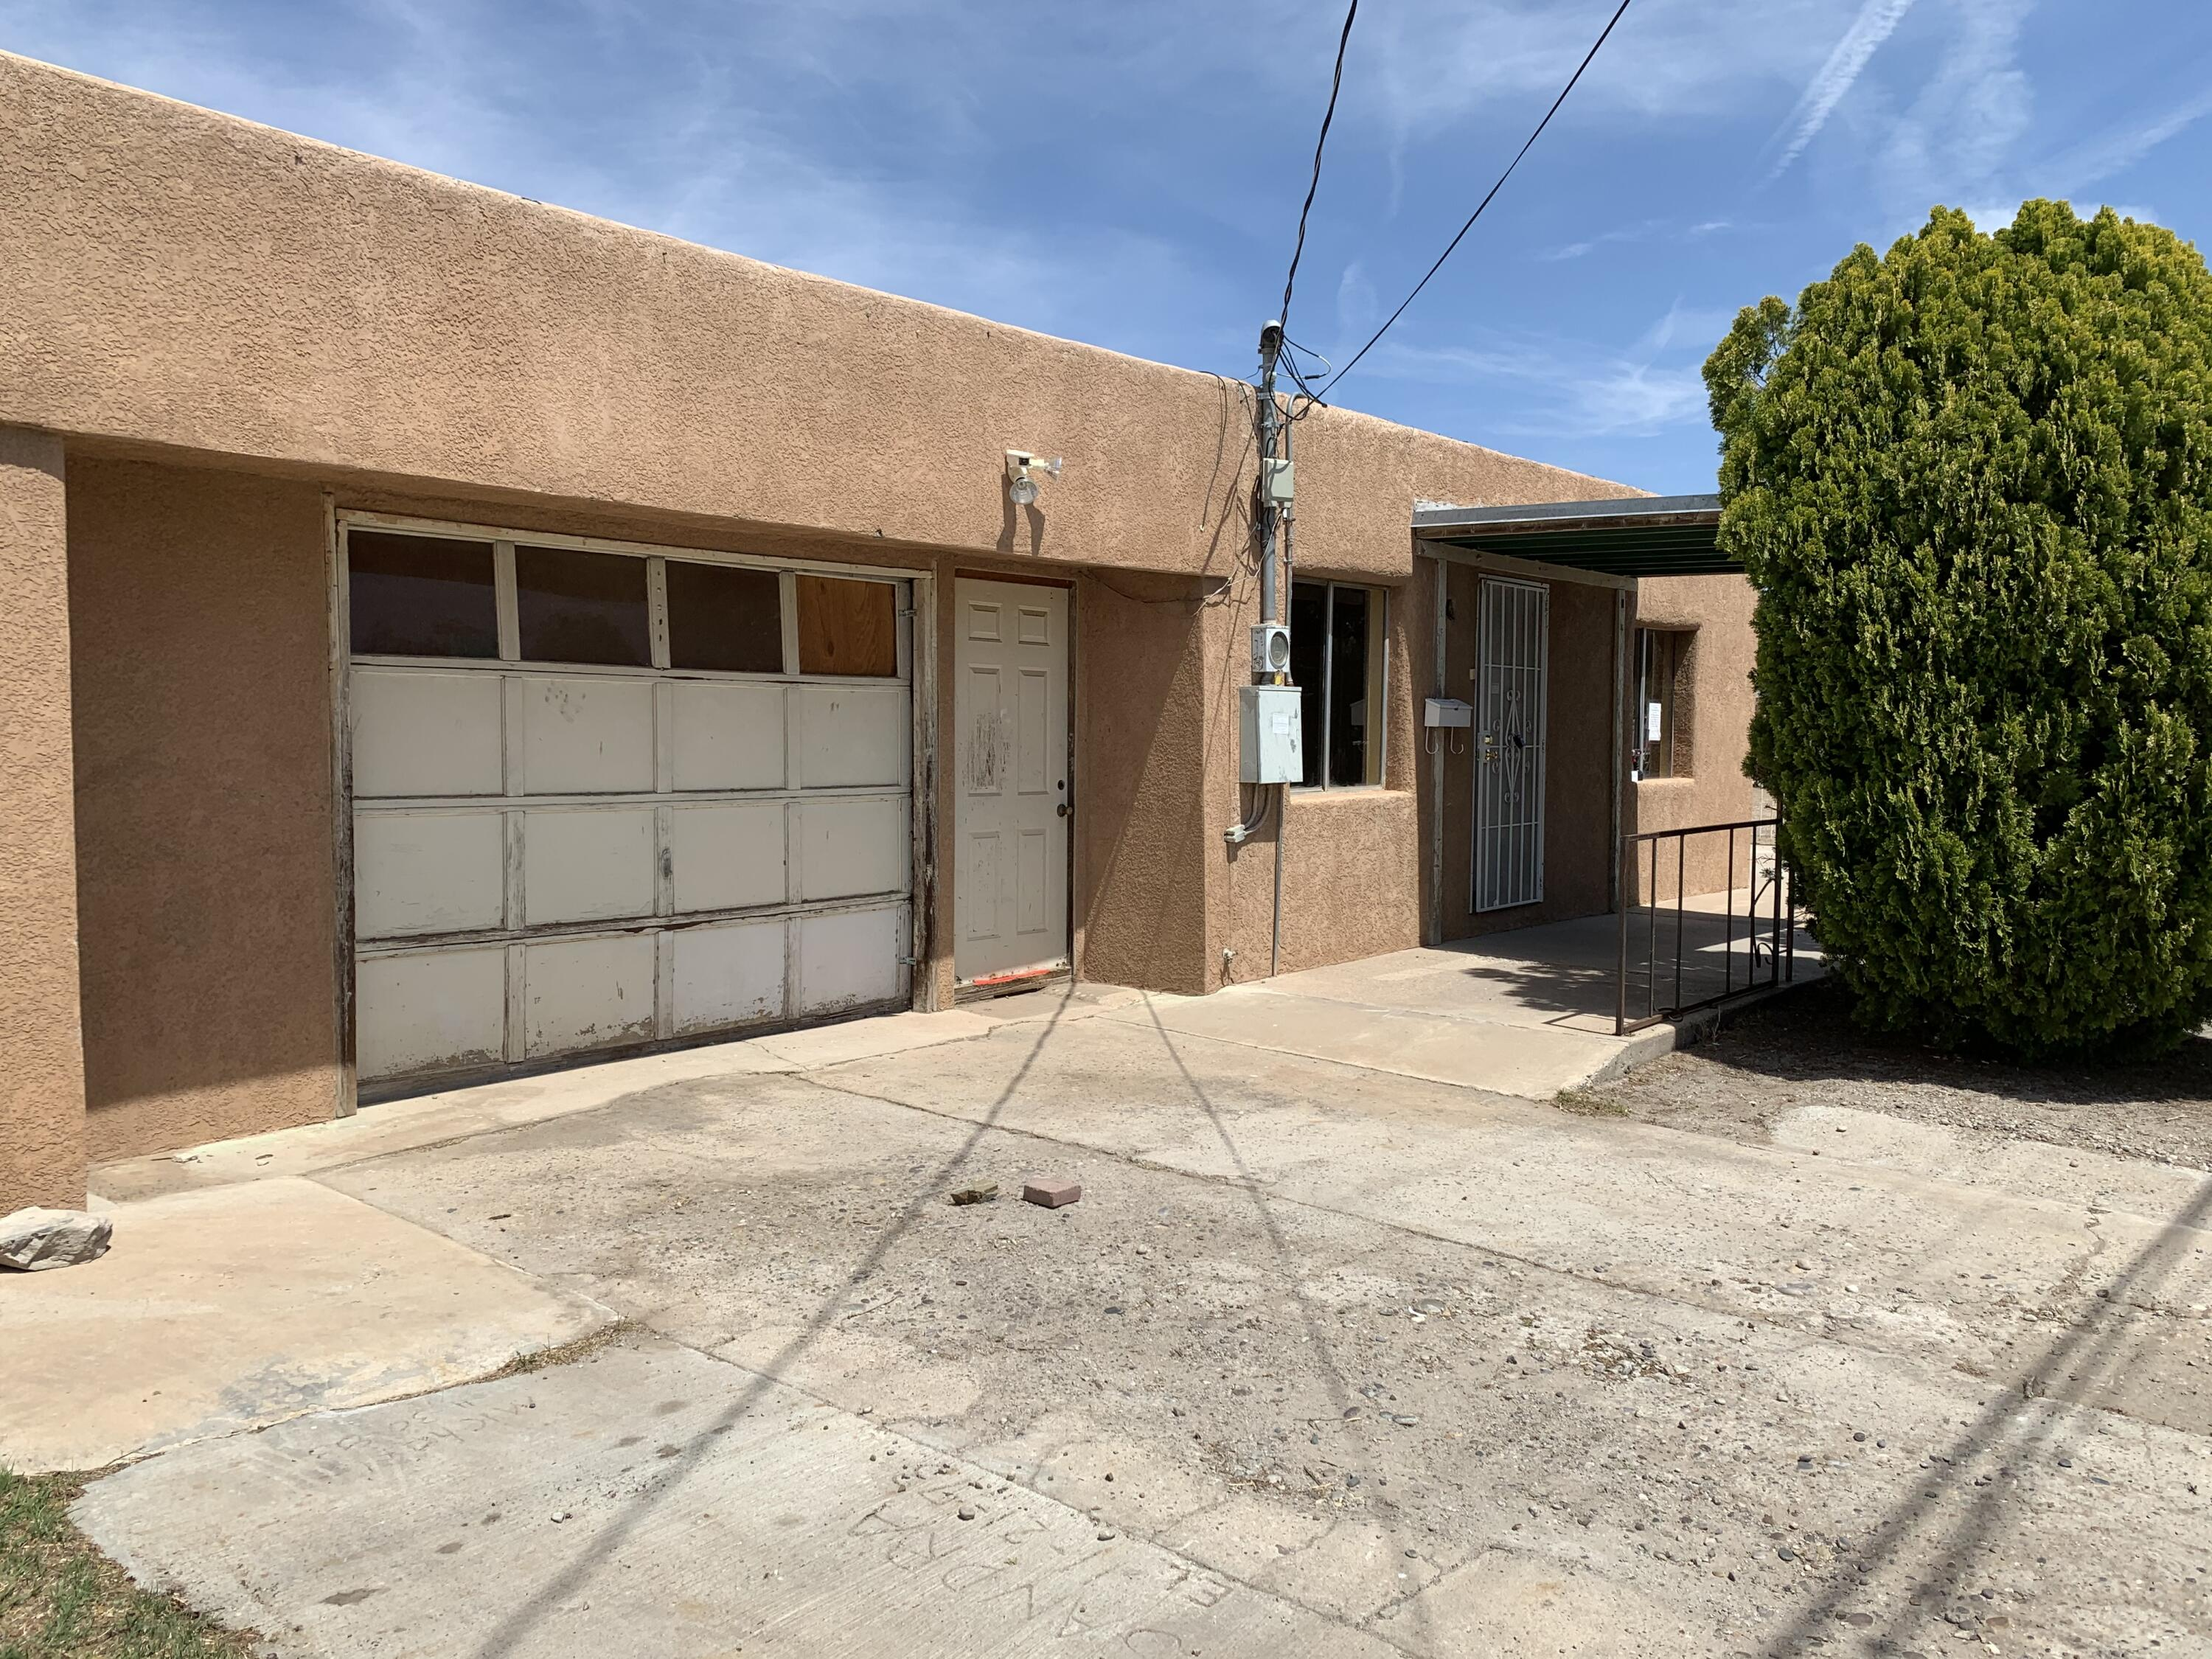 'Under Contract Taking Backup Offers',North Valley home with opportunities for some sweat equity for the home owner or savvy investor. This home features 2 bedrooms with a possibility of 3 bedrooms. Centrally located close to schools, stores and major highways.